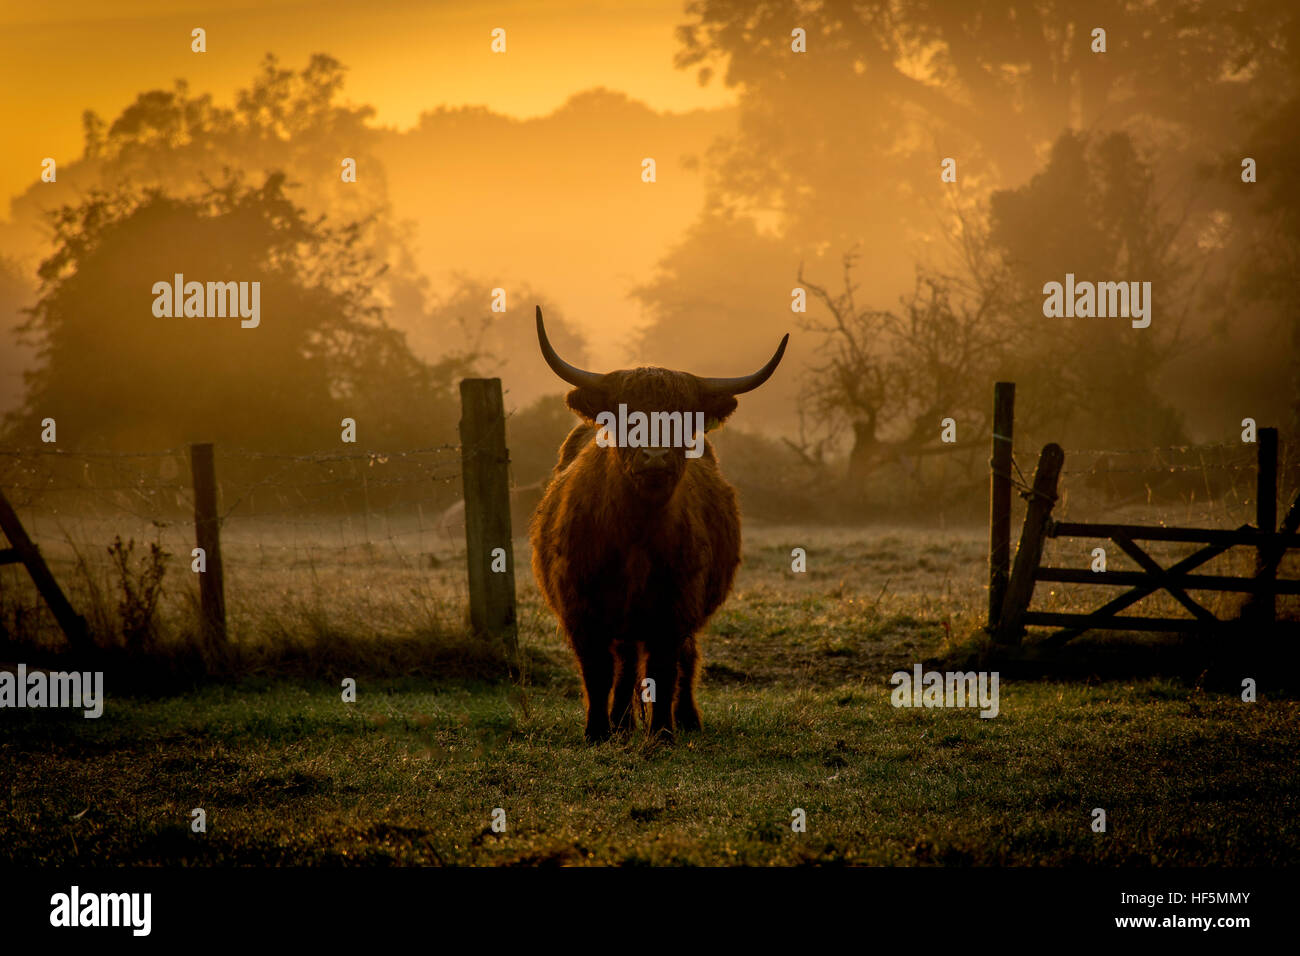 a highland cow at dawn - Stock Image